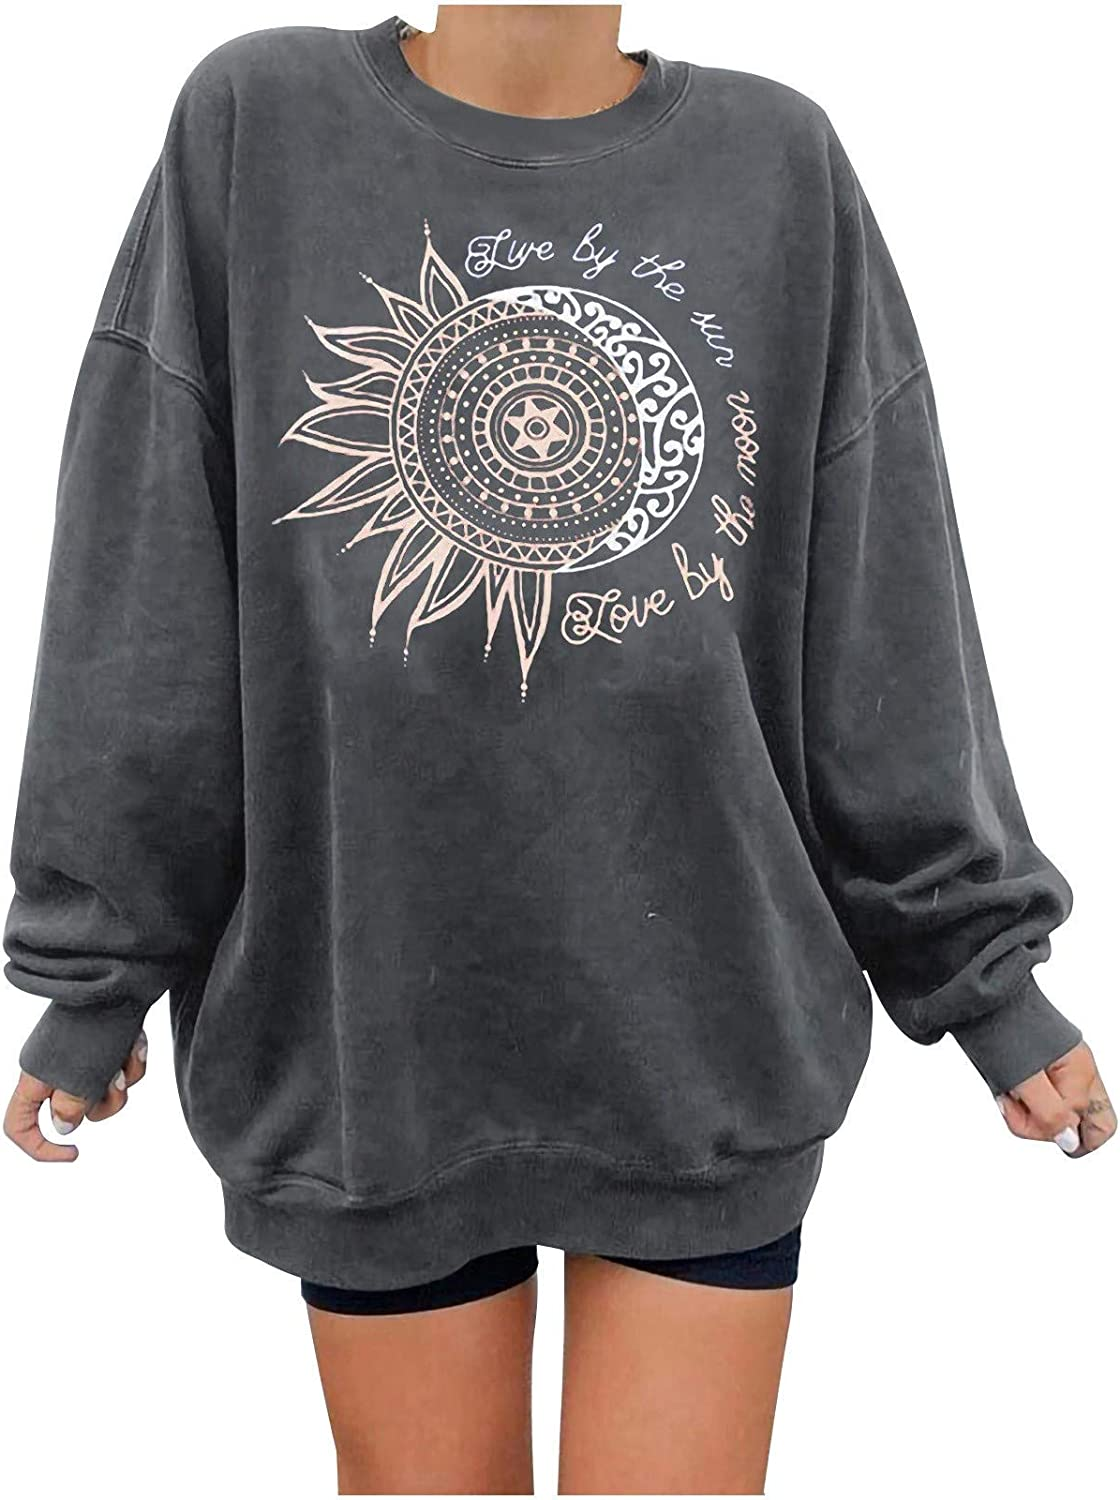 nunonette Aesthetic Sweater for Women,Womens Pullover Sweaters Casual True by The Sun Printed Long Sleeve Sweatshirt Top